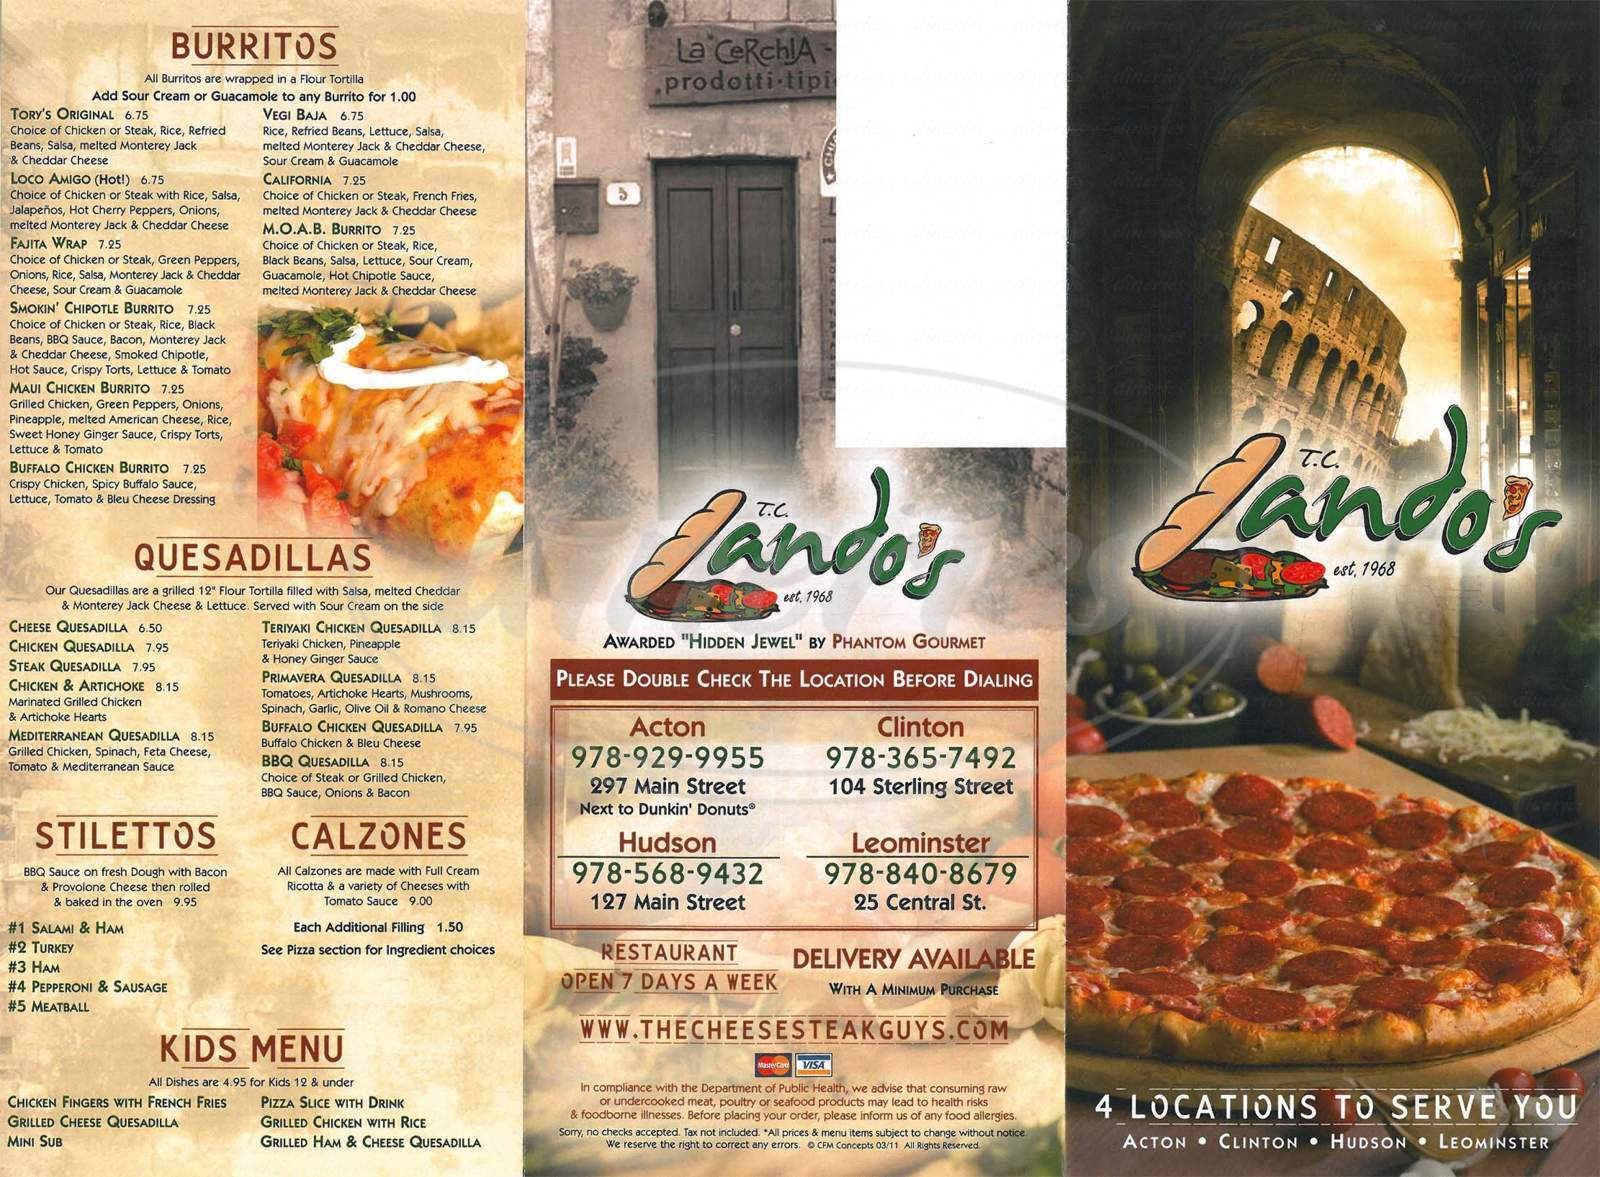 menu for TC Lando's